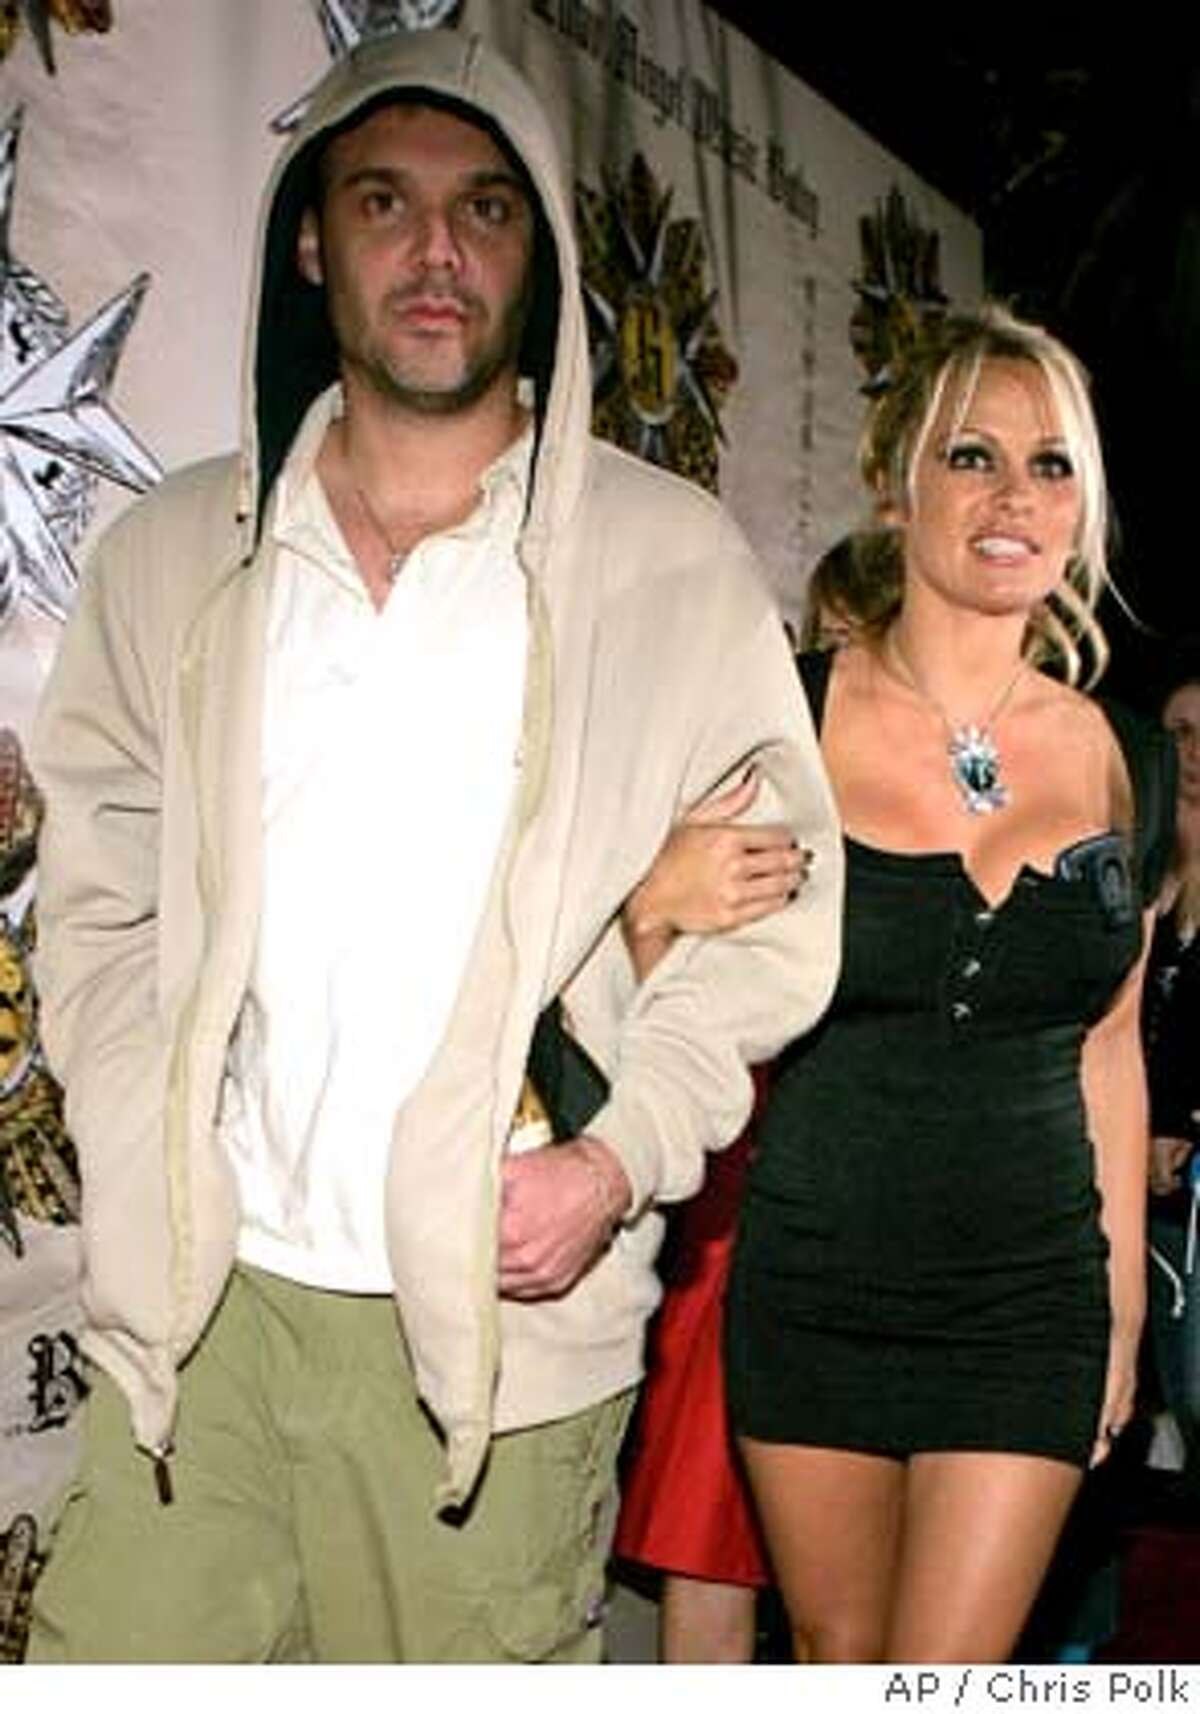 """David LaChapelle and Pamela Anderson attend a party hosted by Gwen Stefani celebrating the release of her solo album """"Love. Angel. Music. Baby"""" at the Standard Hotel in Los Angeles on Sunday Nov. 14, 2004. (AP Photo/Chris Polk)"""